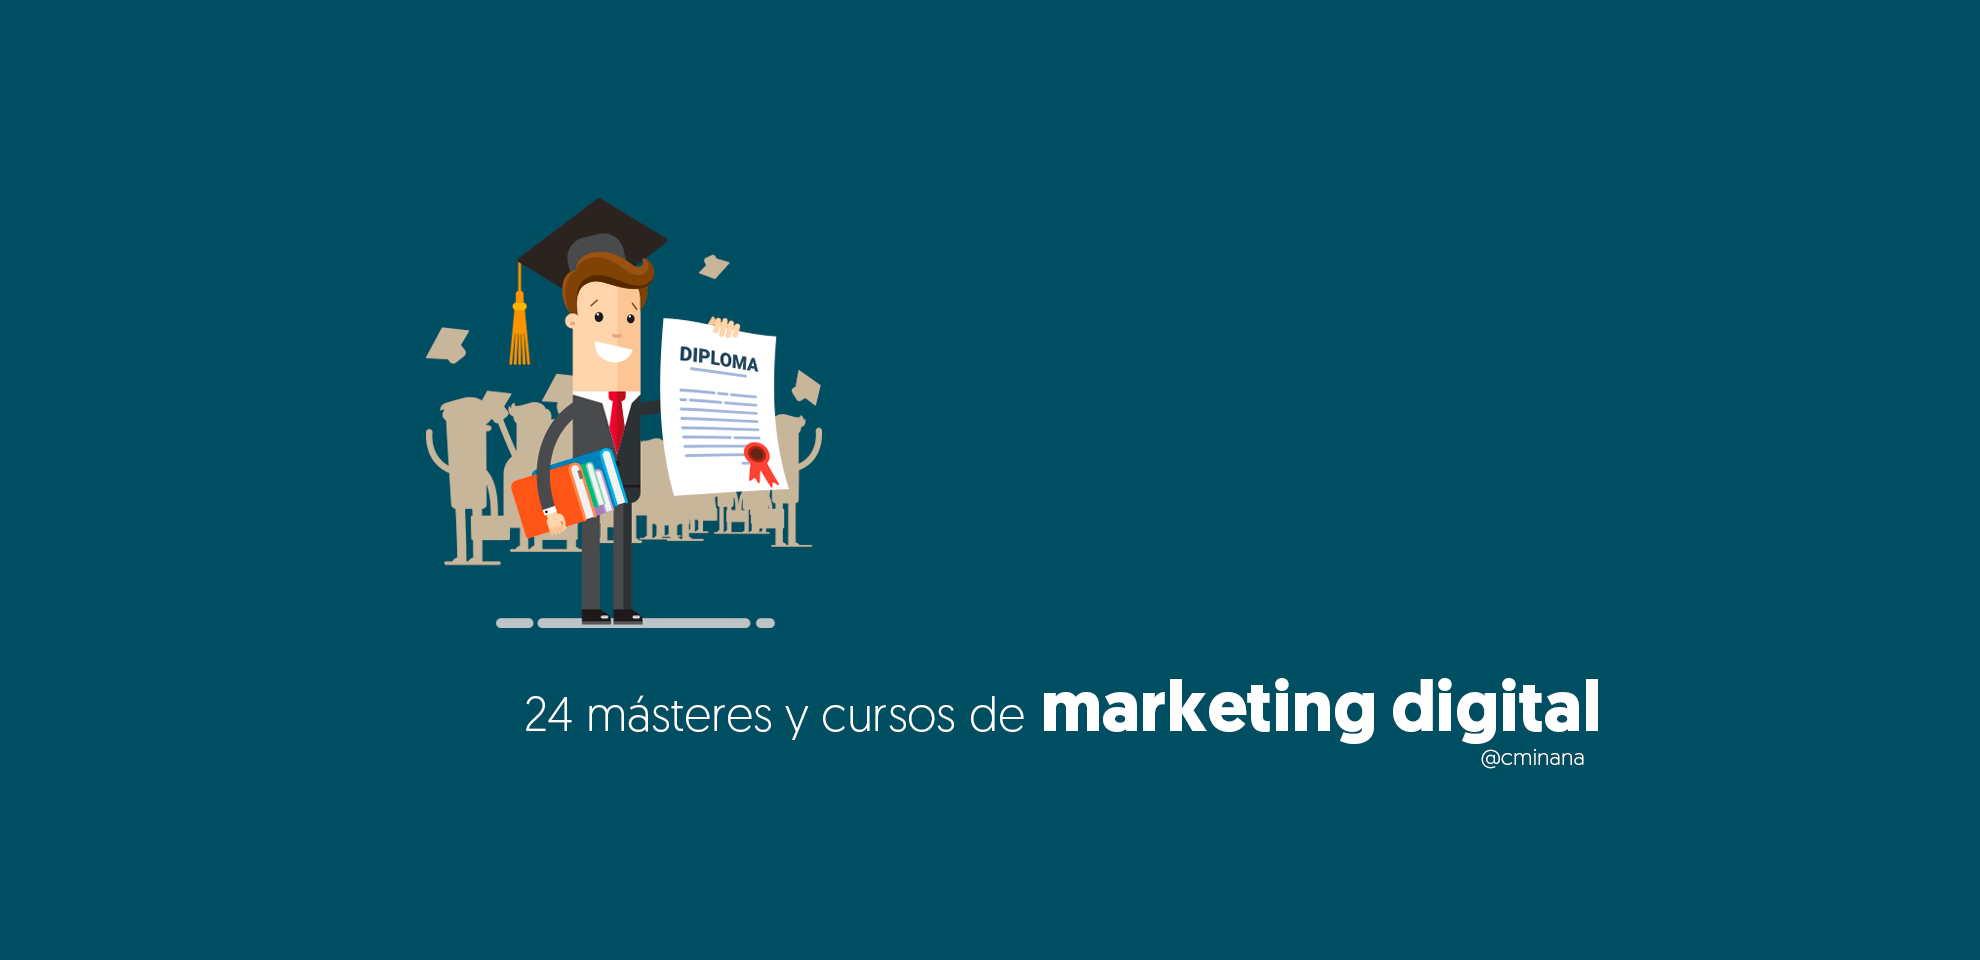 Curso marketing digital gratis cursos certificación google ads analytics shopping